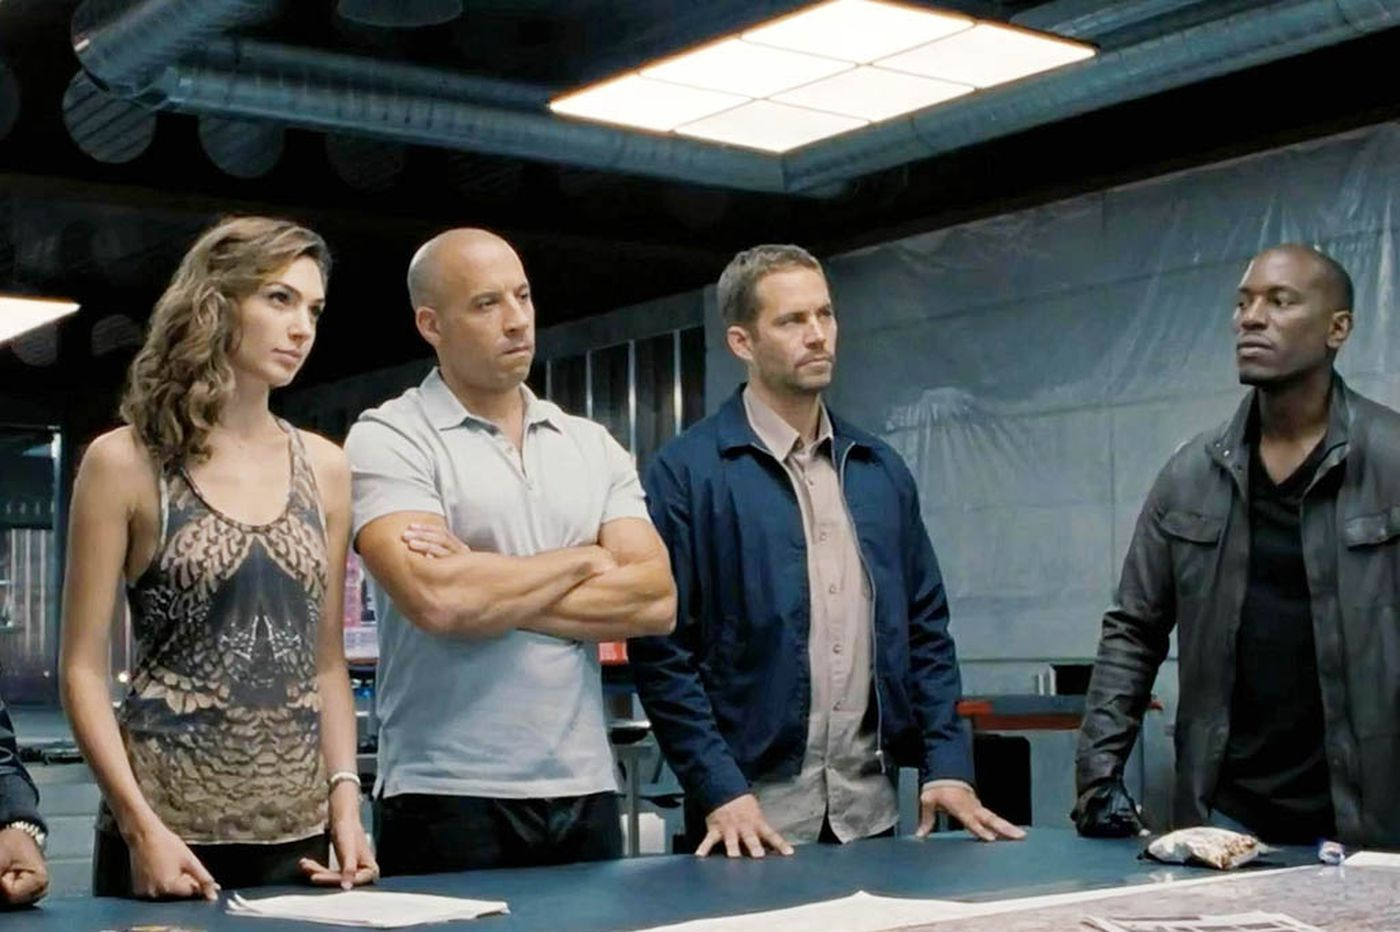 'Fast and Furious': Return of M Rod